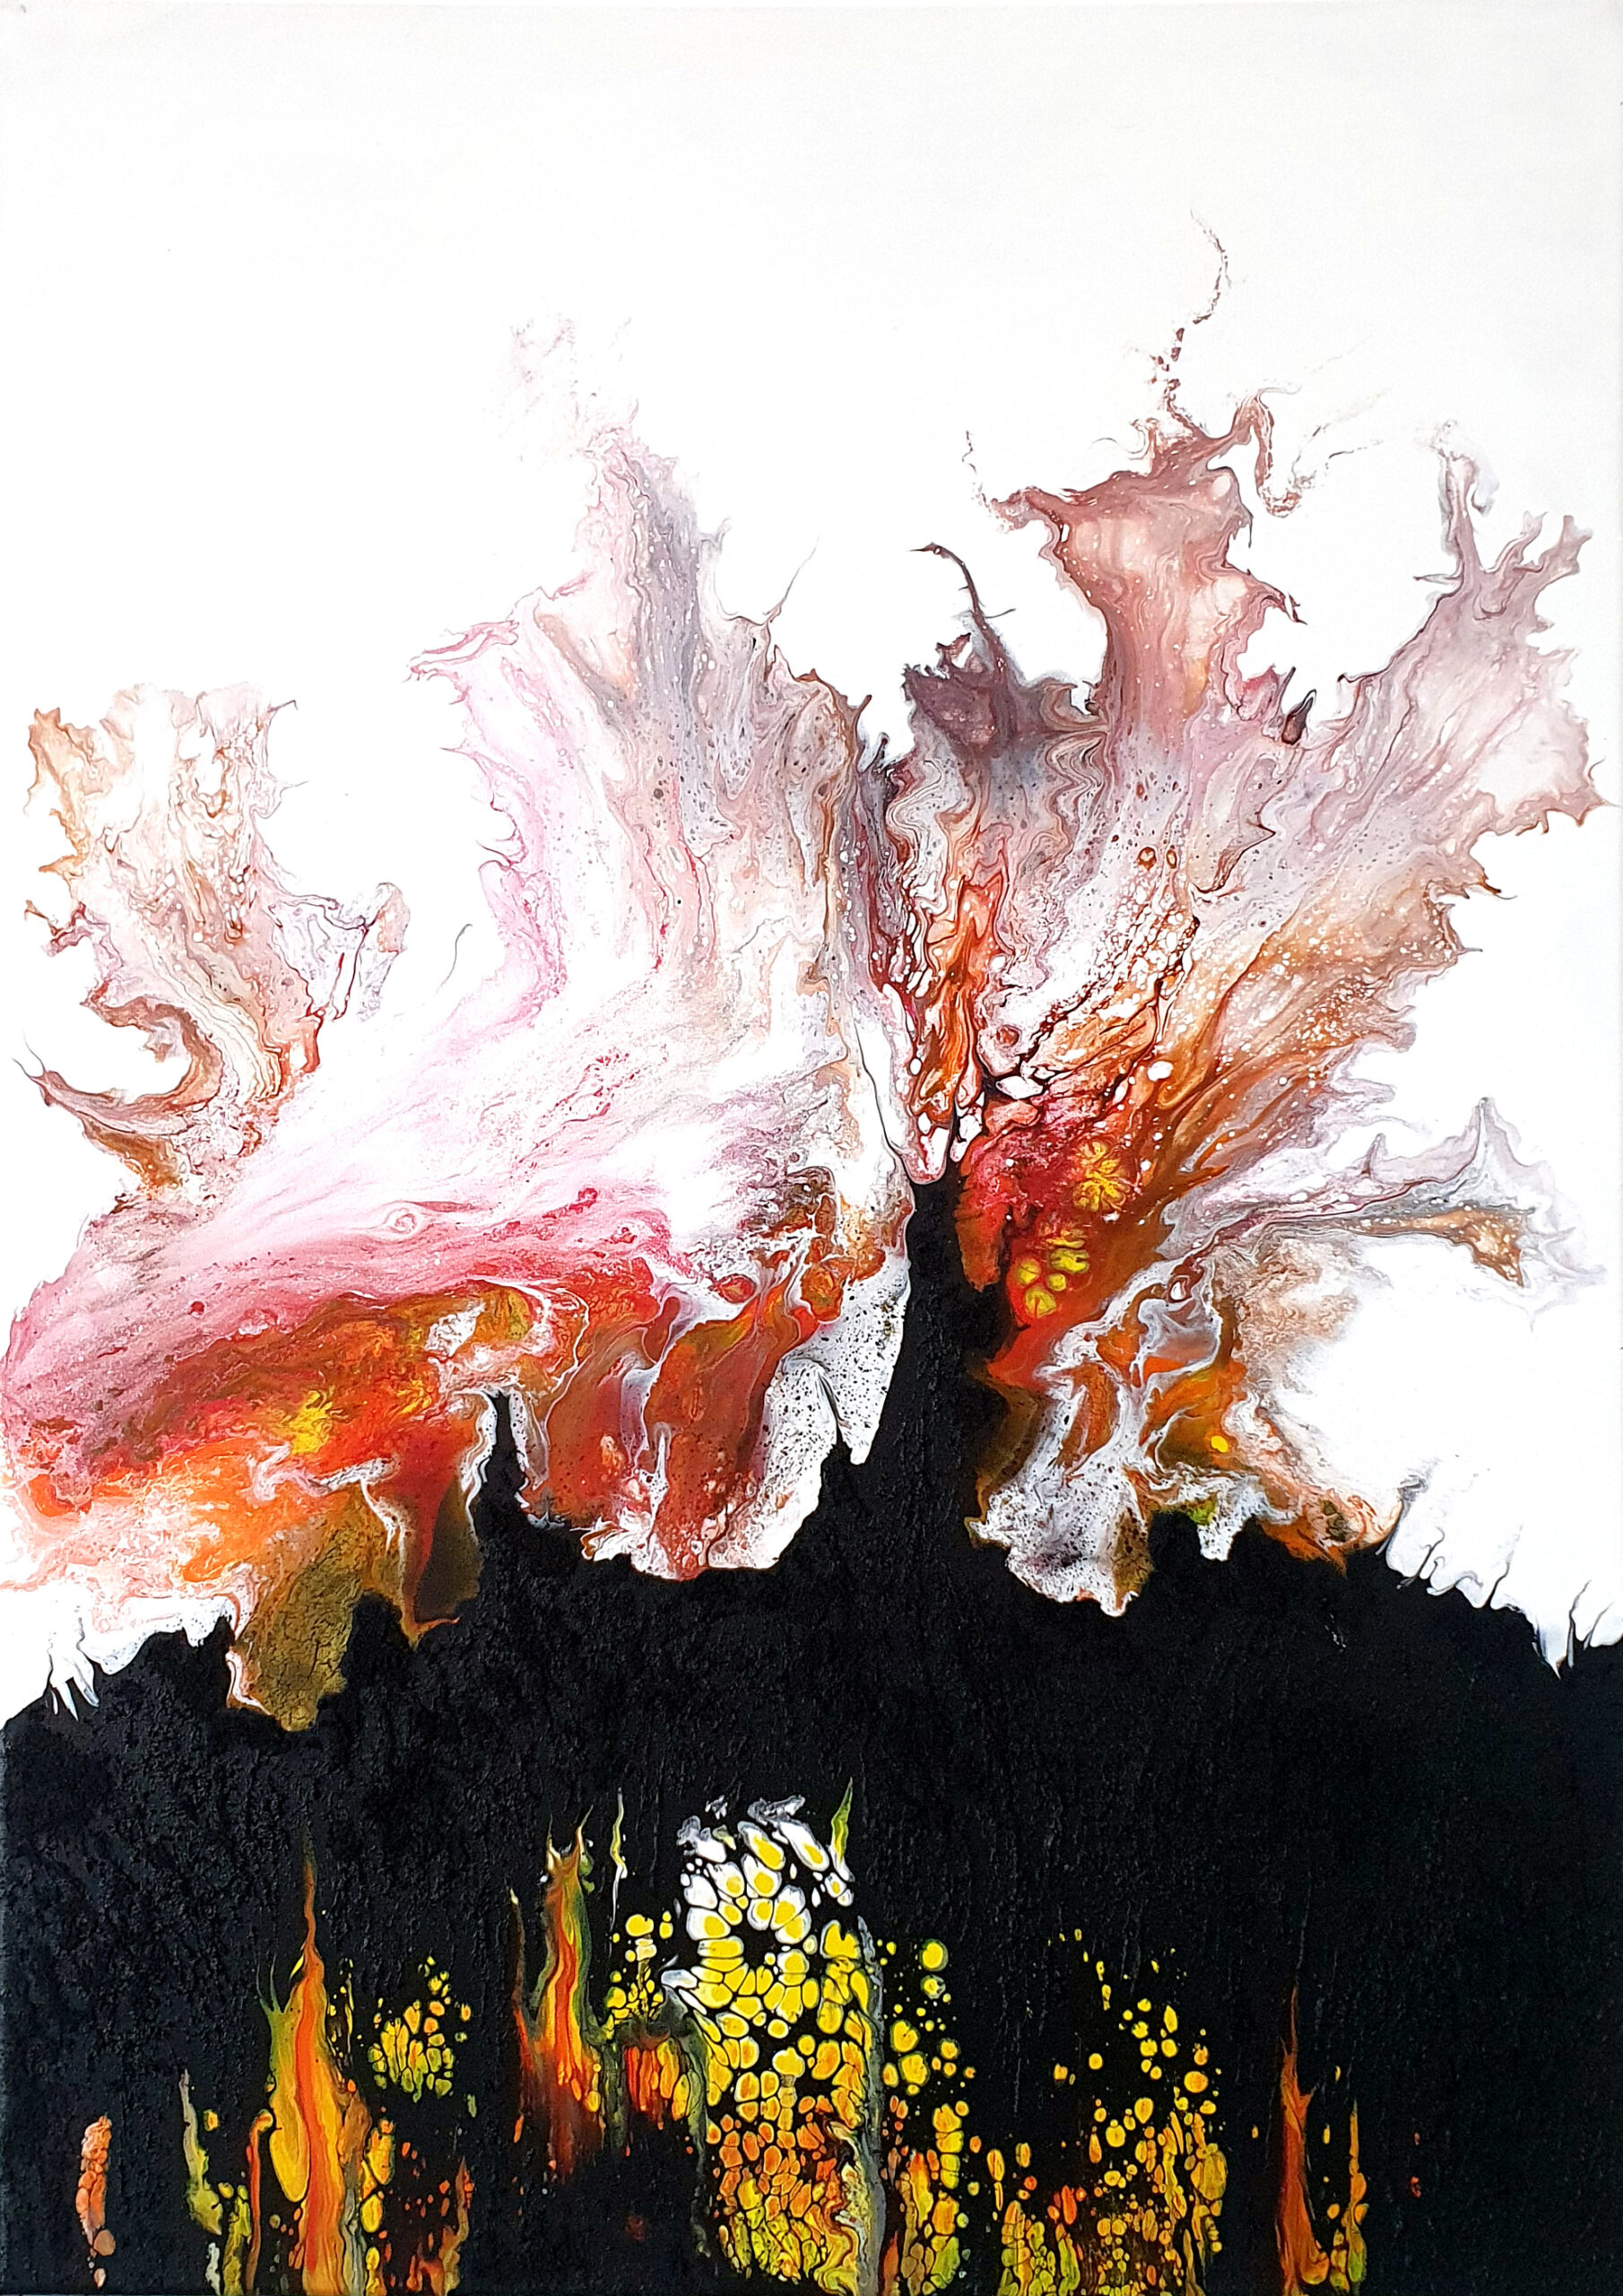 """""""Tanz"""", acrylic pouring by Calla Hueppe, Claudie Hamburg, Claudie Hüppe"""